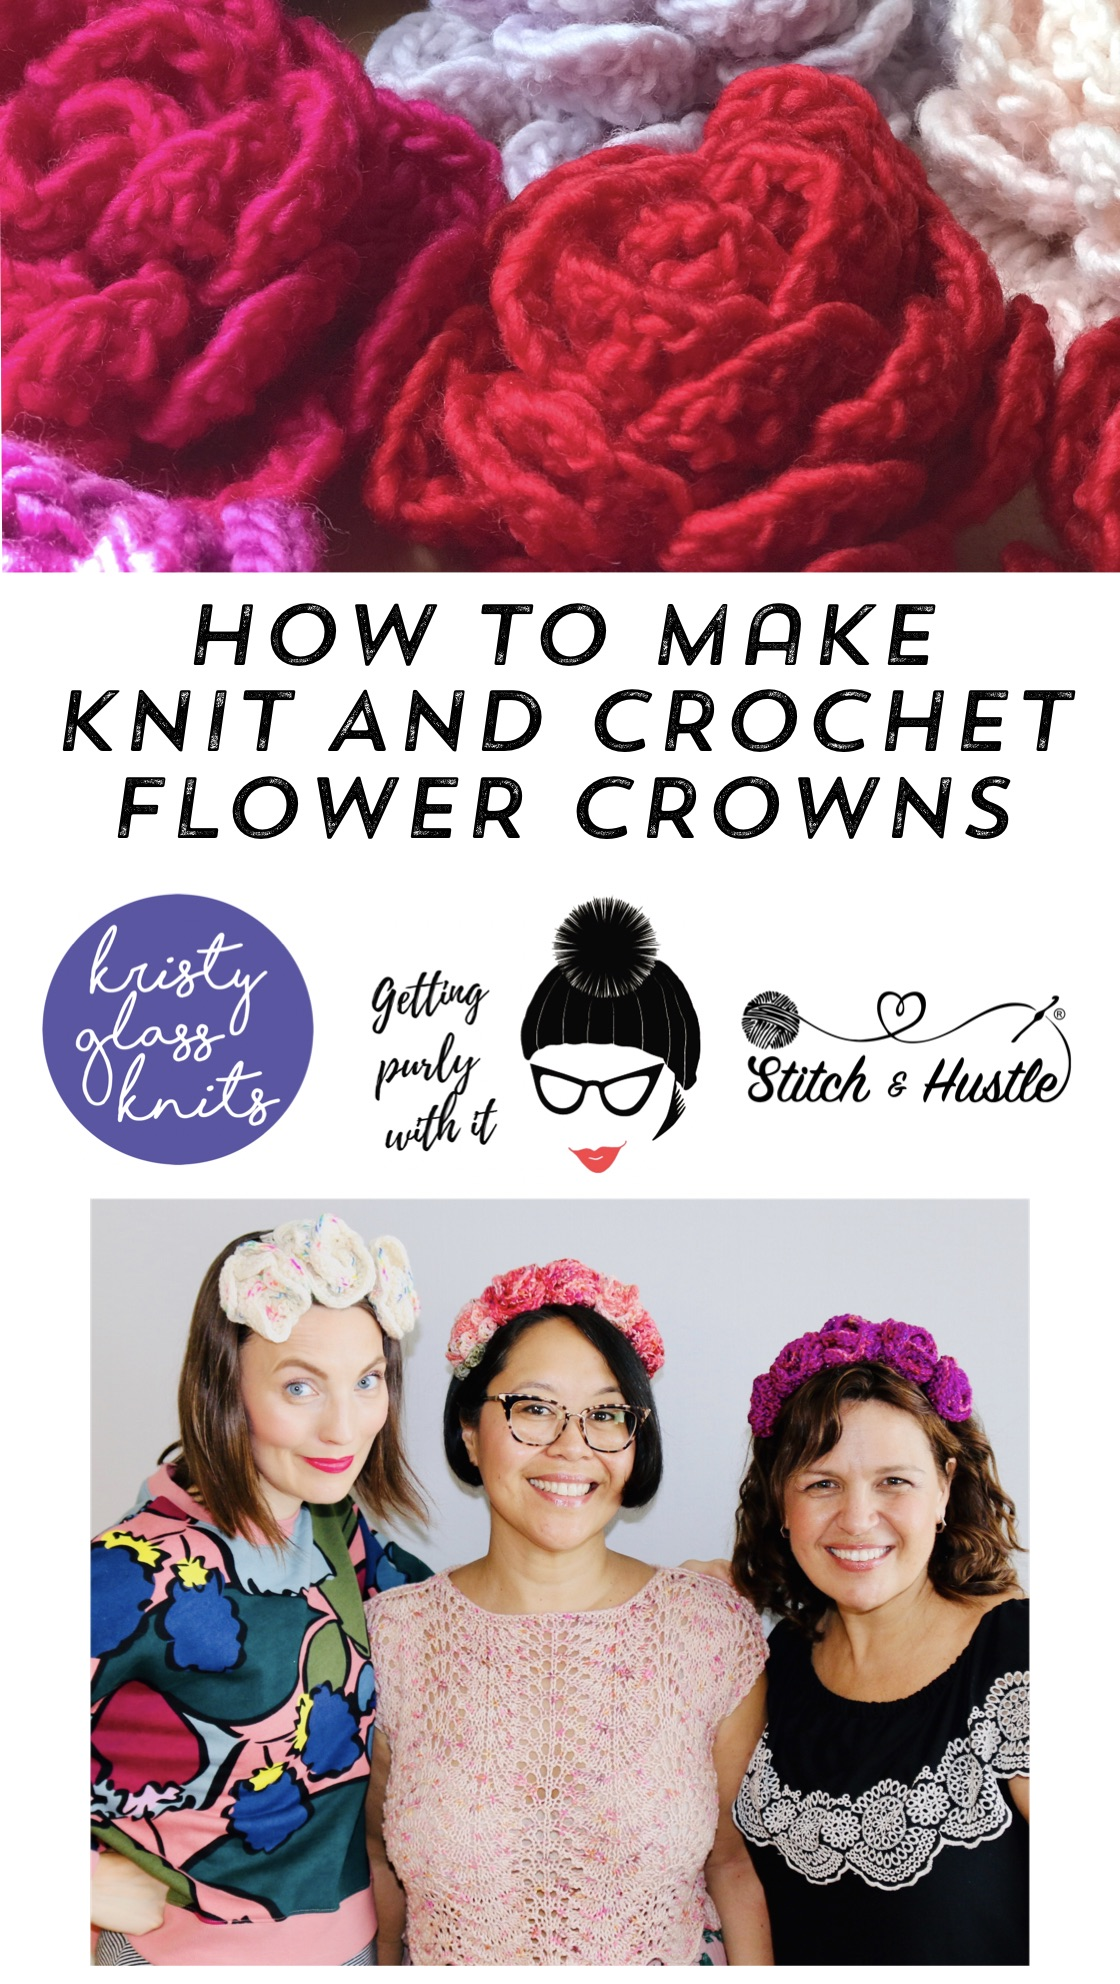 crochet-and-knit-flower-crown-free-pattern-6.jpg